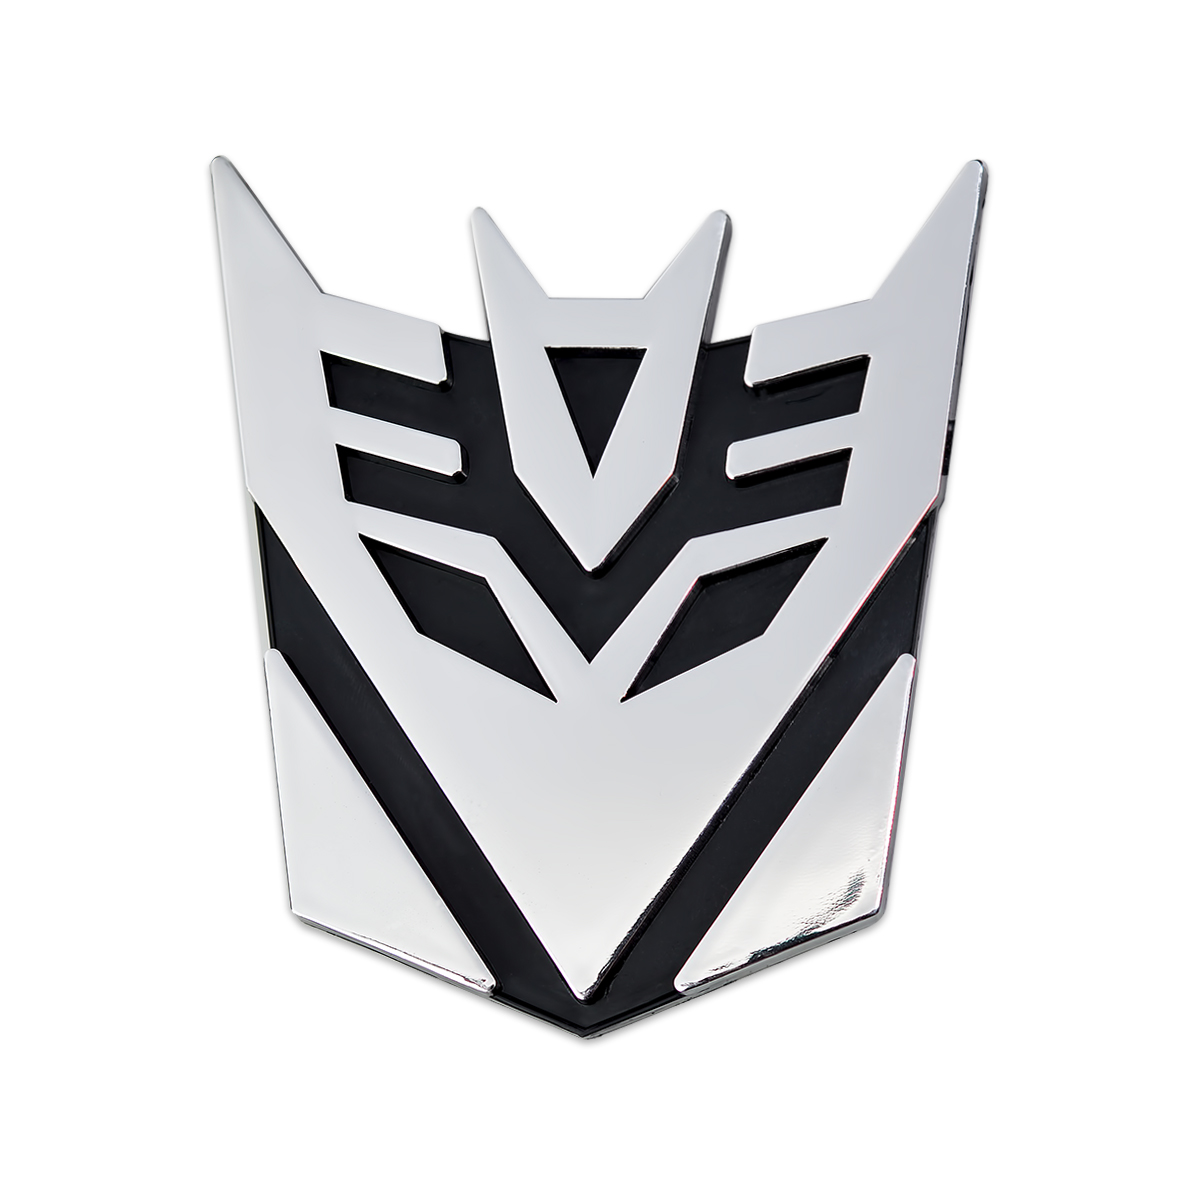 3 Tall Transformers Decepticon Chrome Auto Emblem